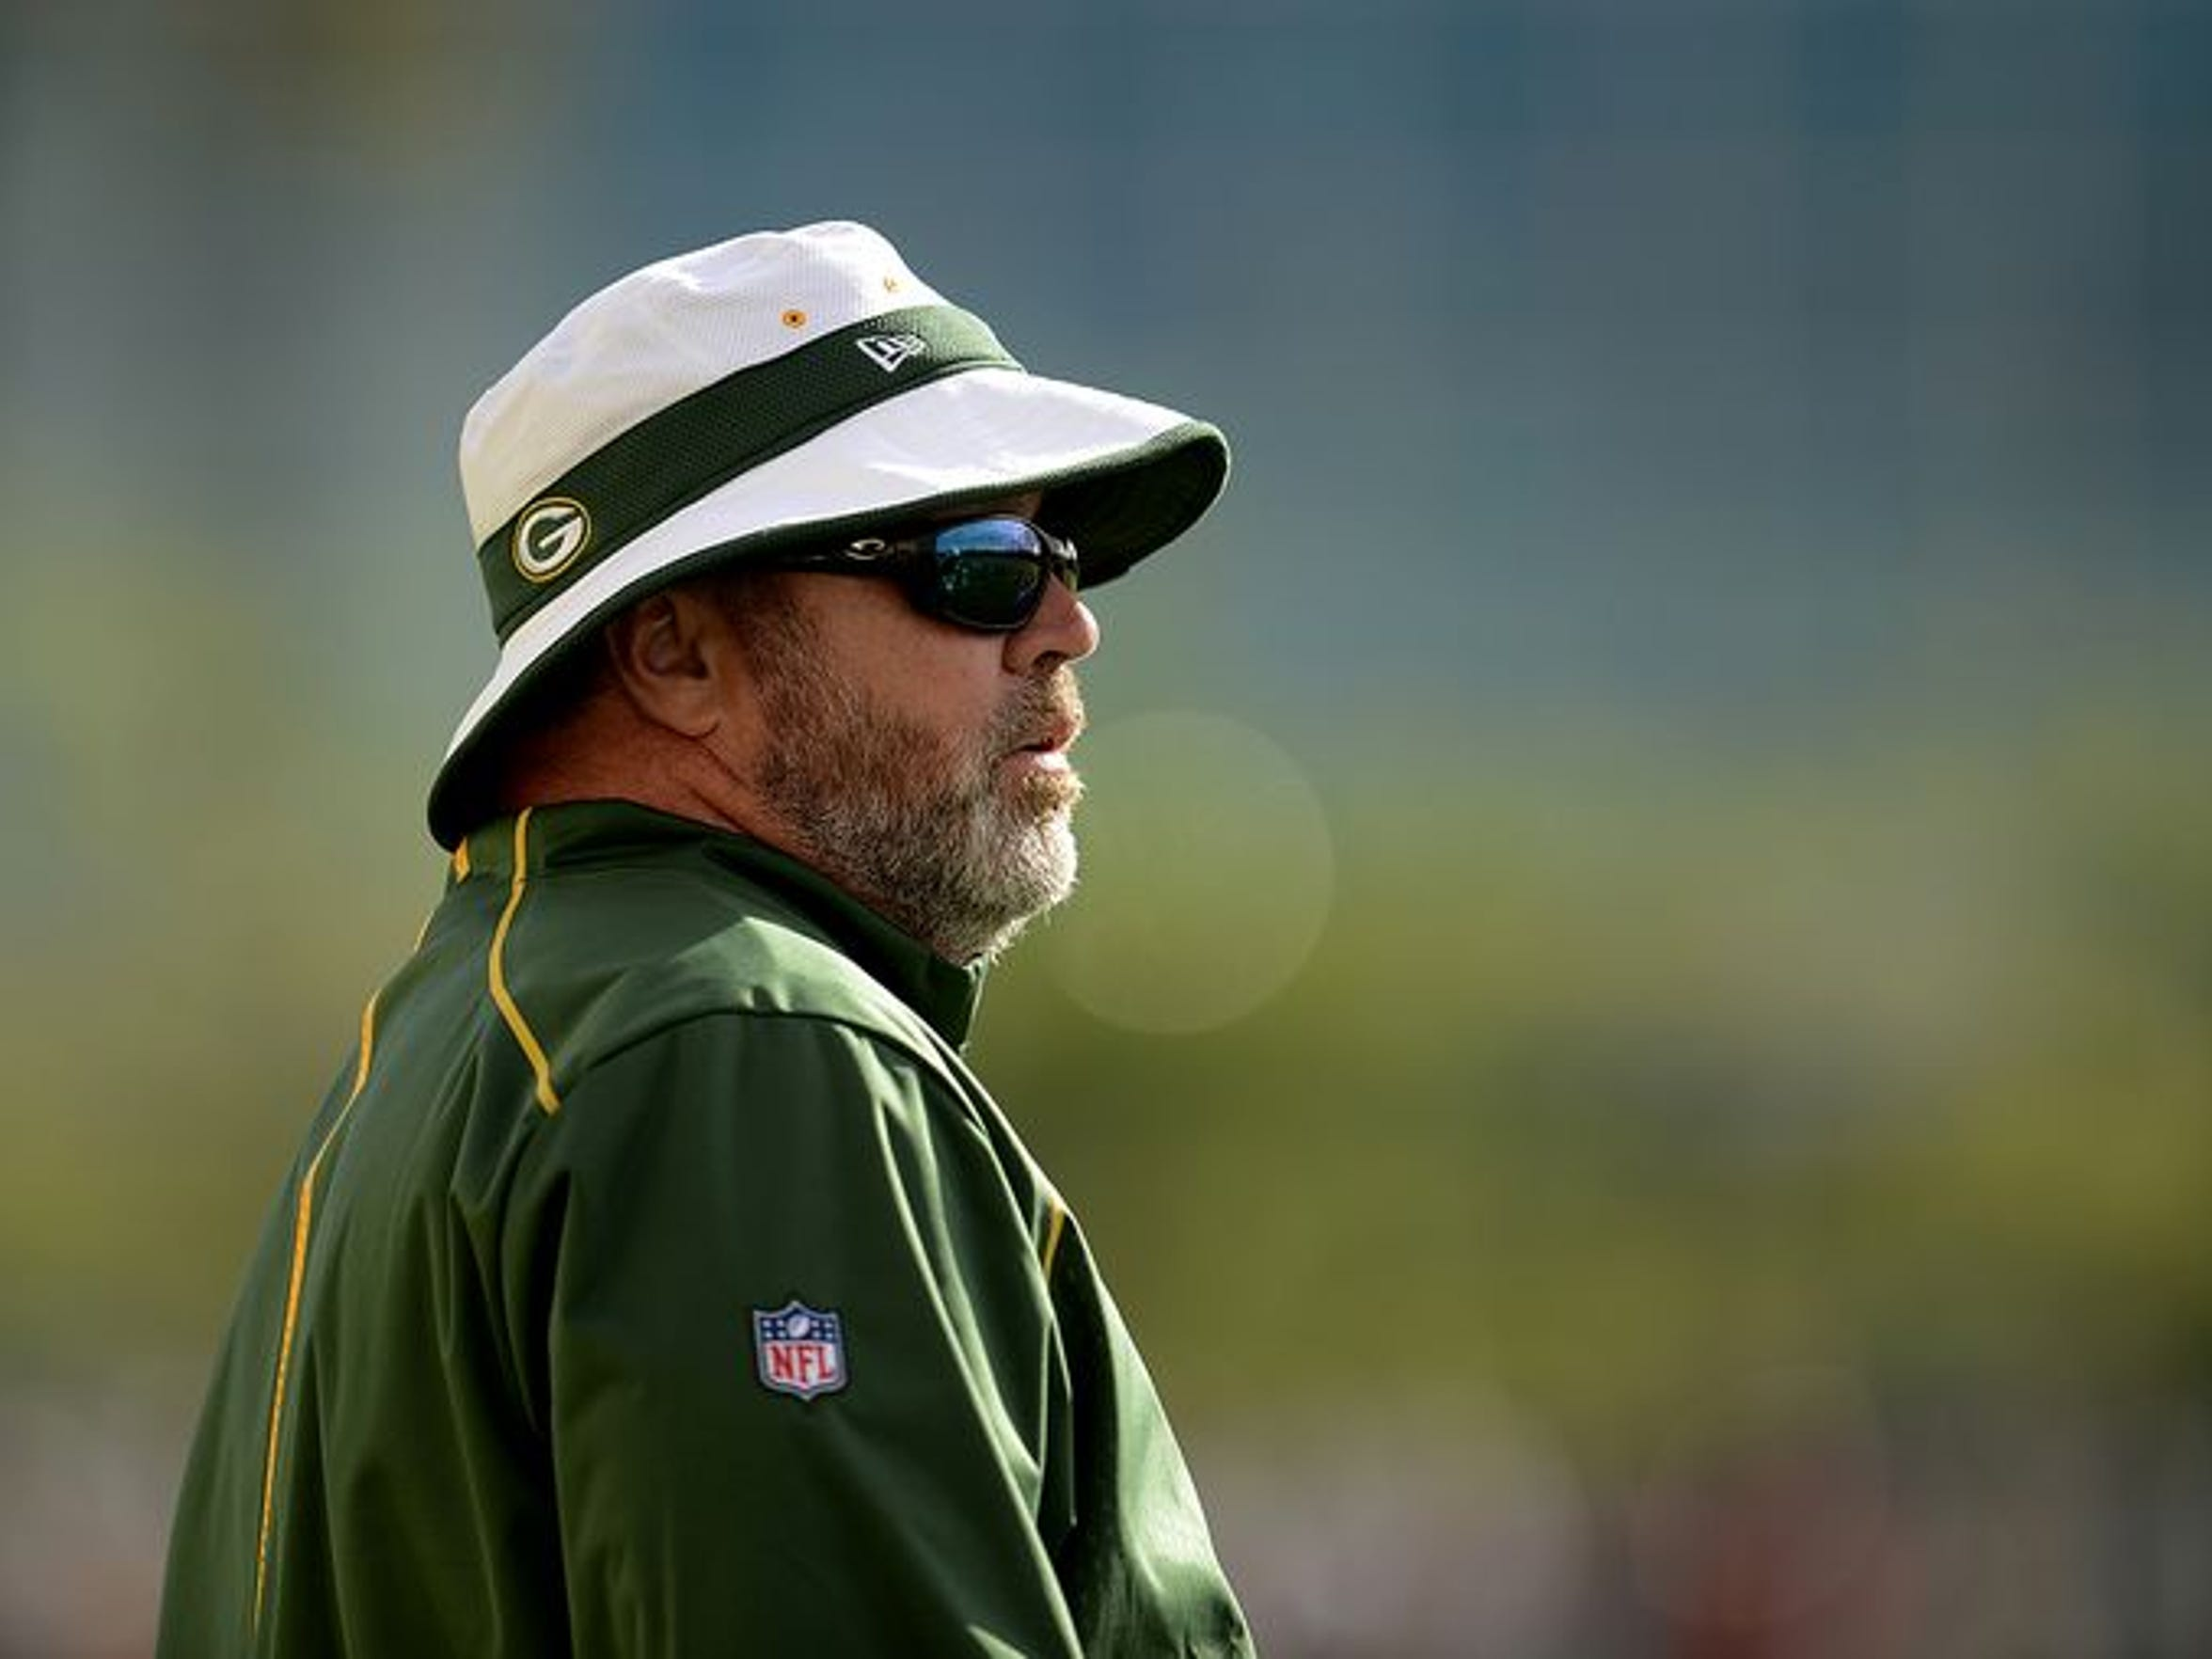 Green Bay Packers coach Mike McCarthy looks on during training camp practice at Ray Nitschke Field on Tuesday, Aug. 4, 2015.